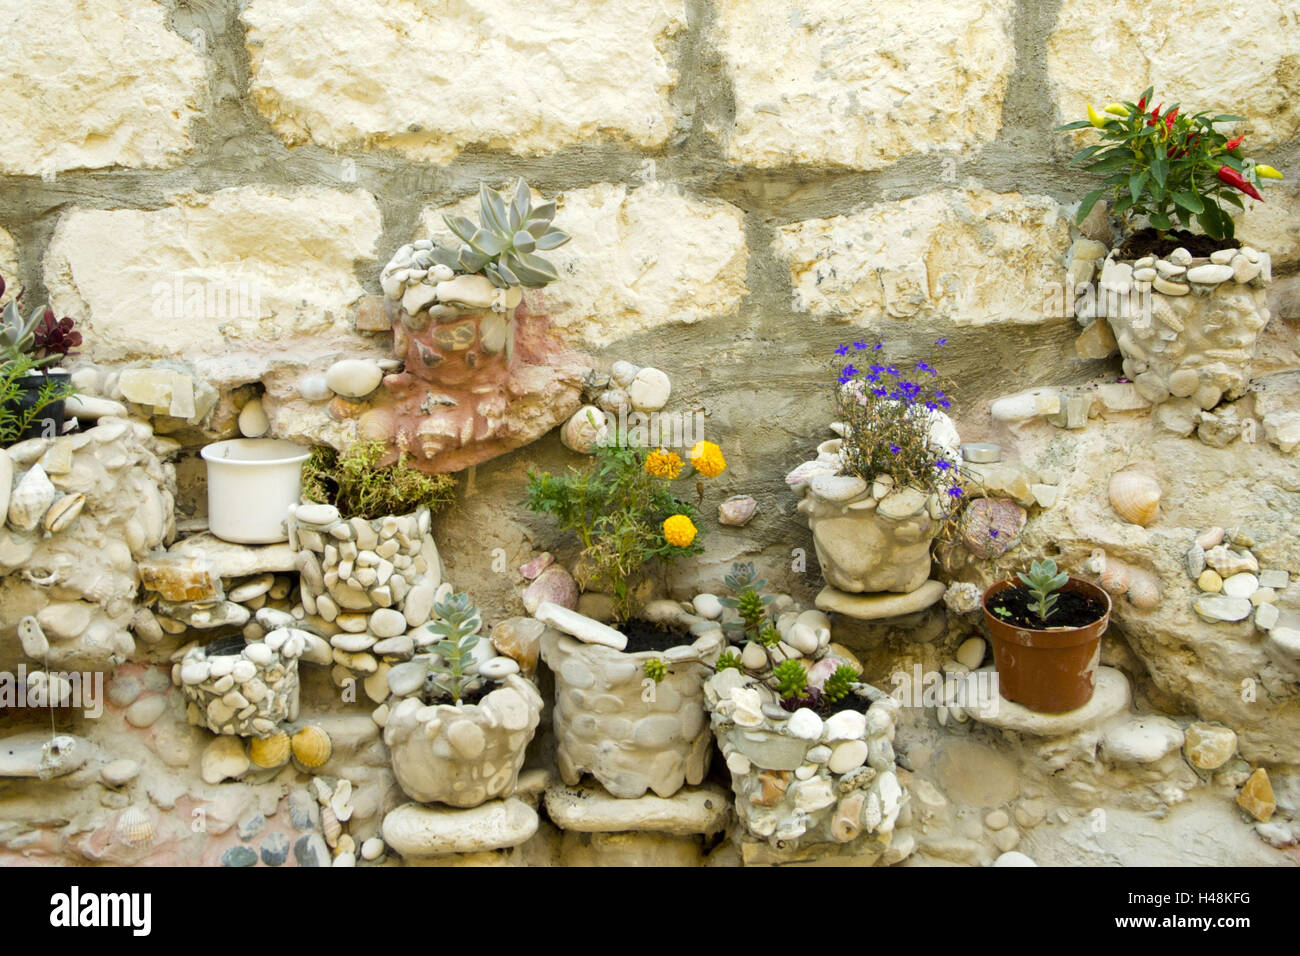 Croatia, Dalmatia, Vis, flower decoration in of a house, - Stock Image